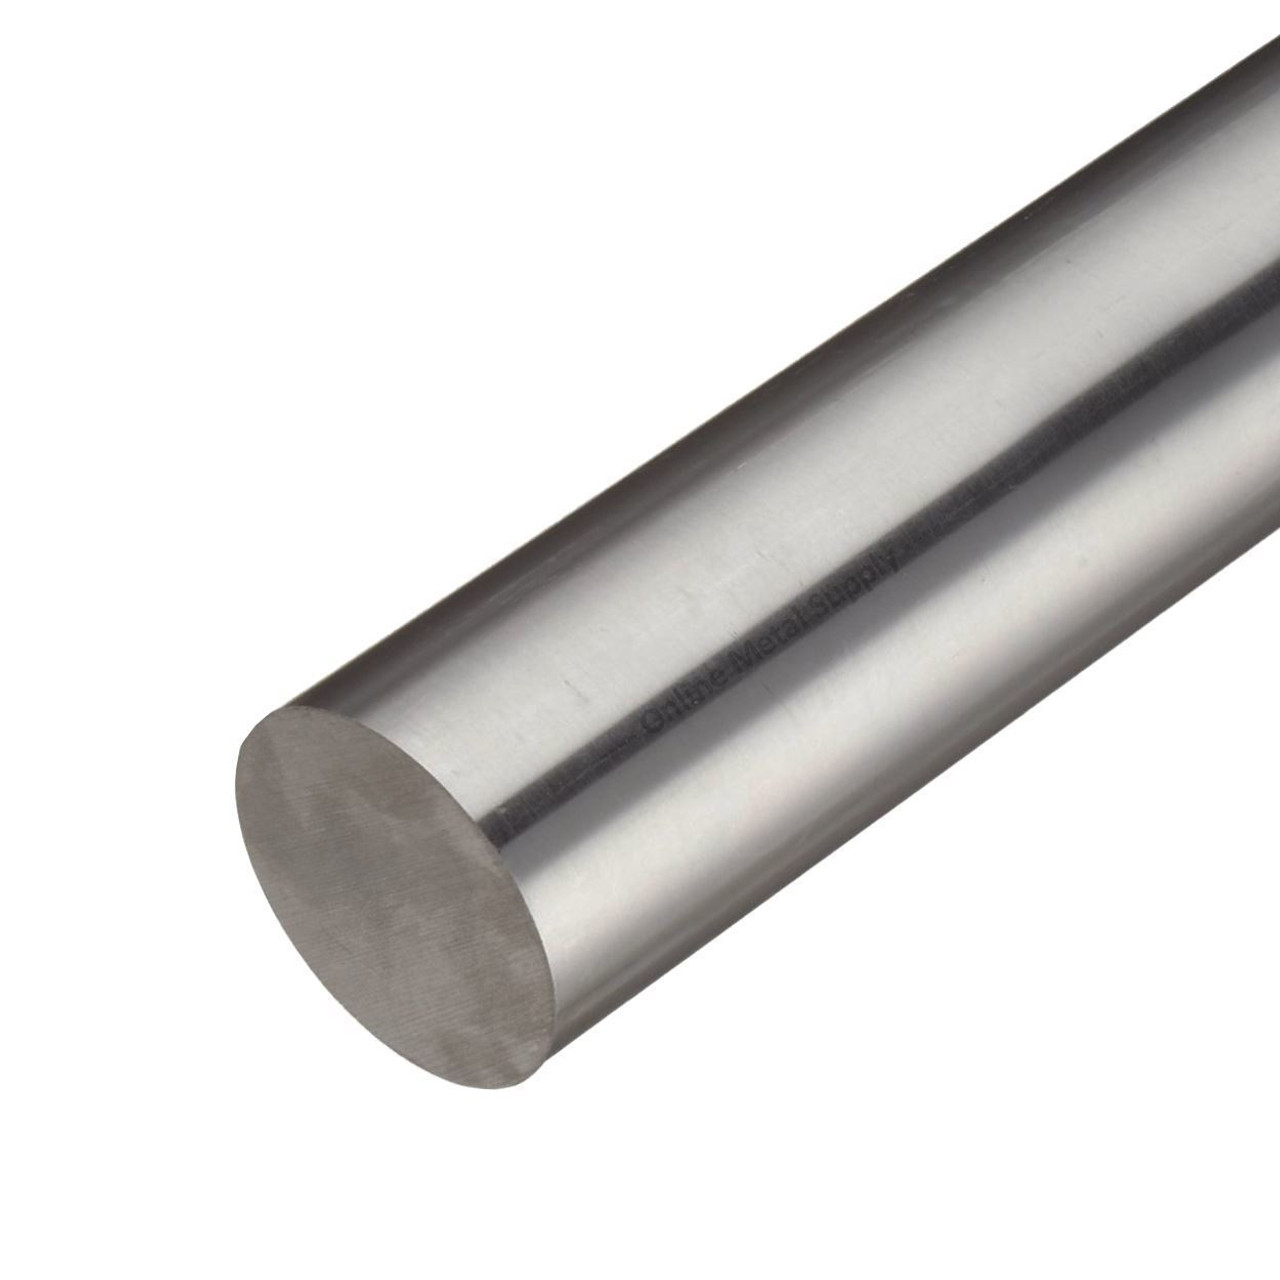 3.750 (3-3/4 inch) x 2 inches, 15-5 Cond A CF Stainless Steel Round Rod